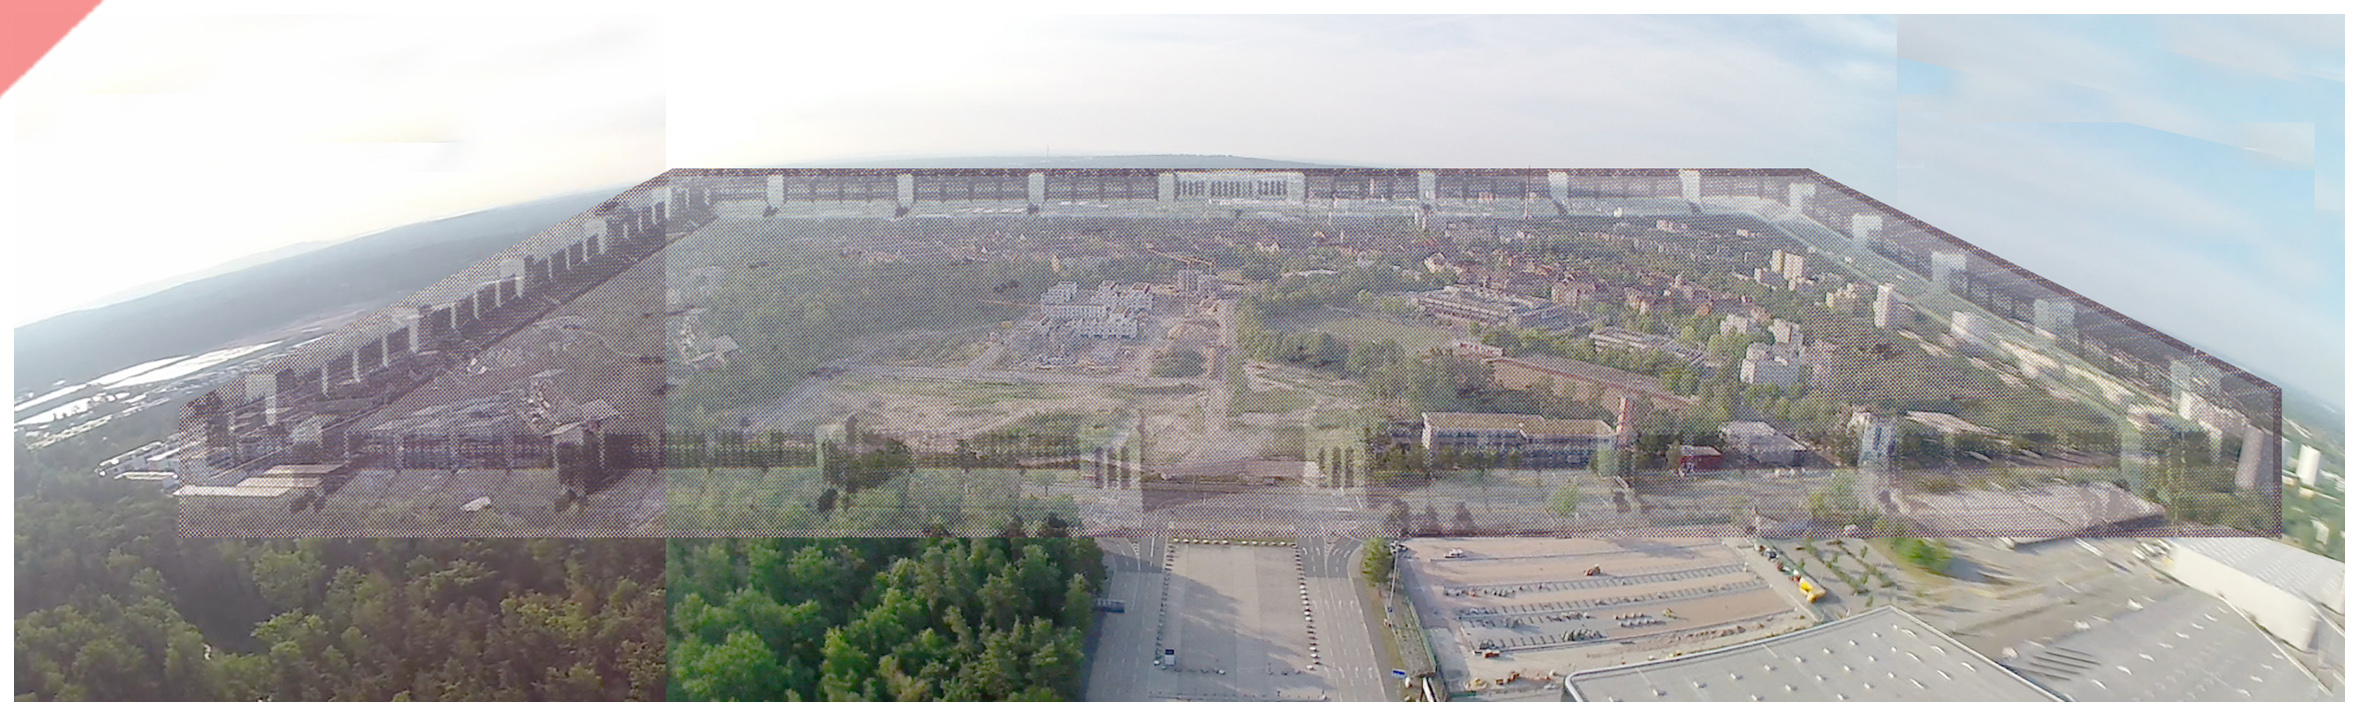 March-field-Nuremberg-Party-Rally-Grounds-Drone-flight-Superimposing-Now-Then